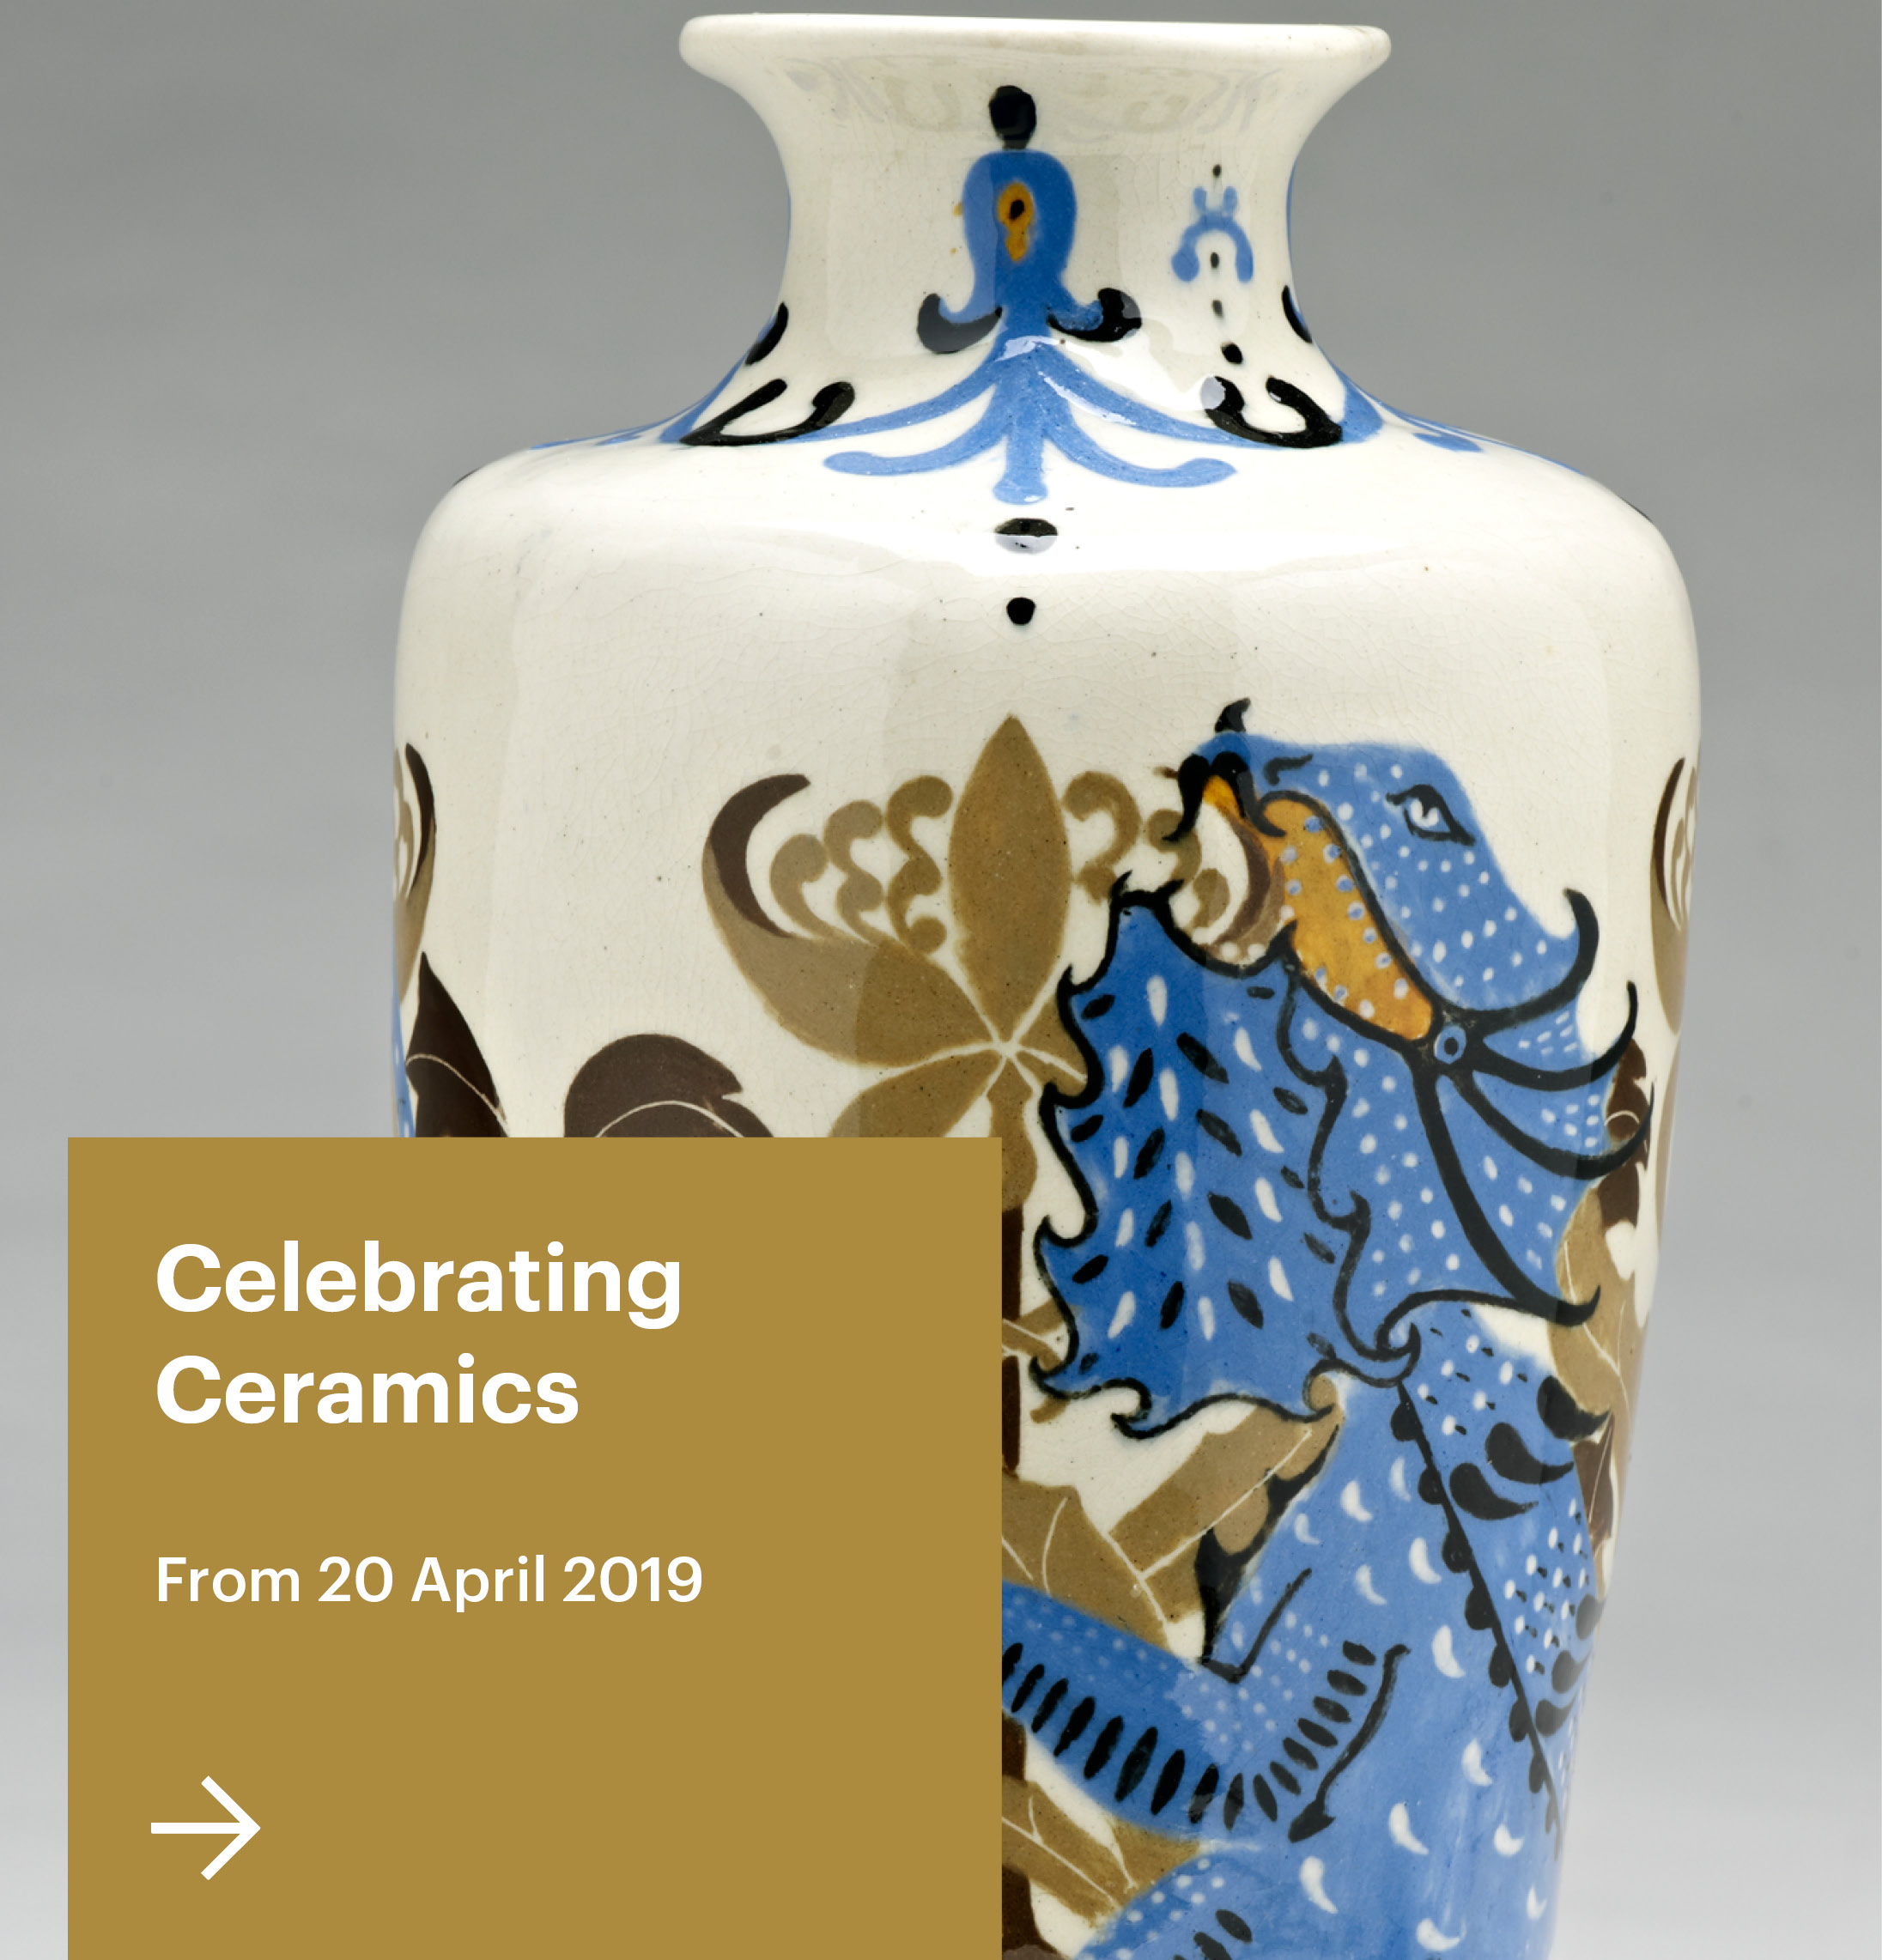 Celebrating Ceramics at TMAG